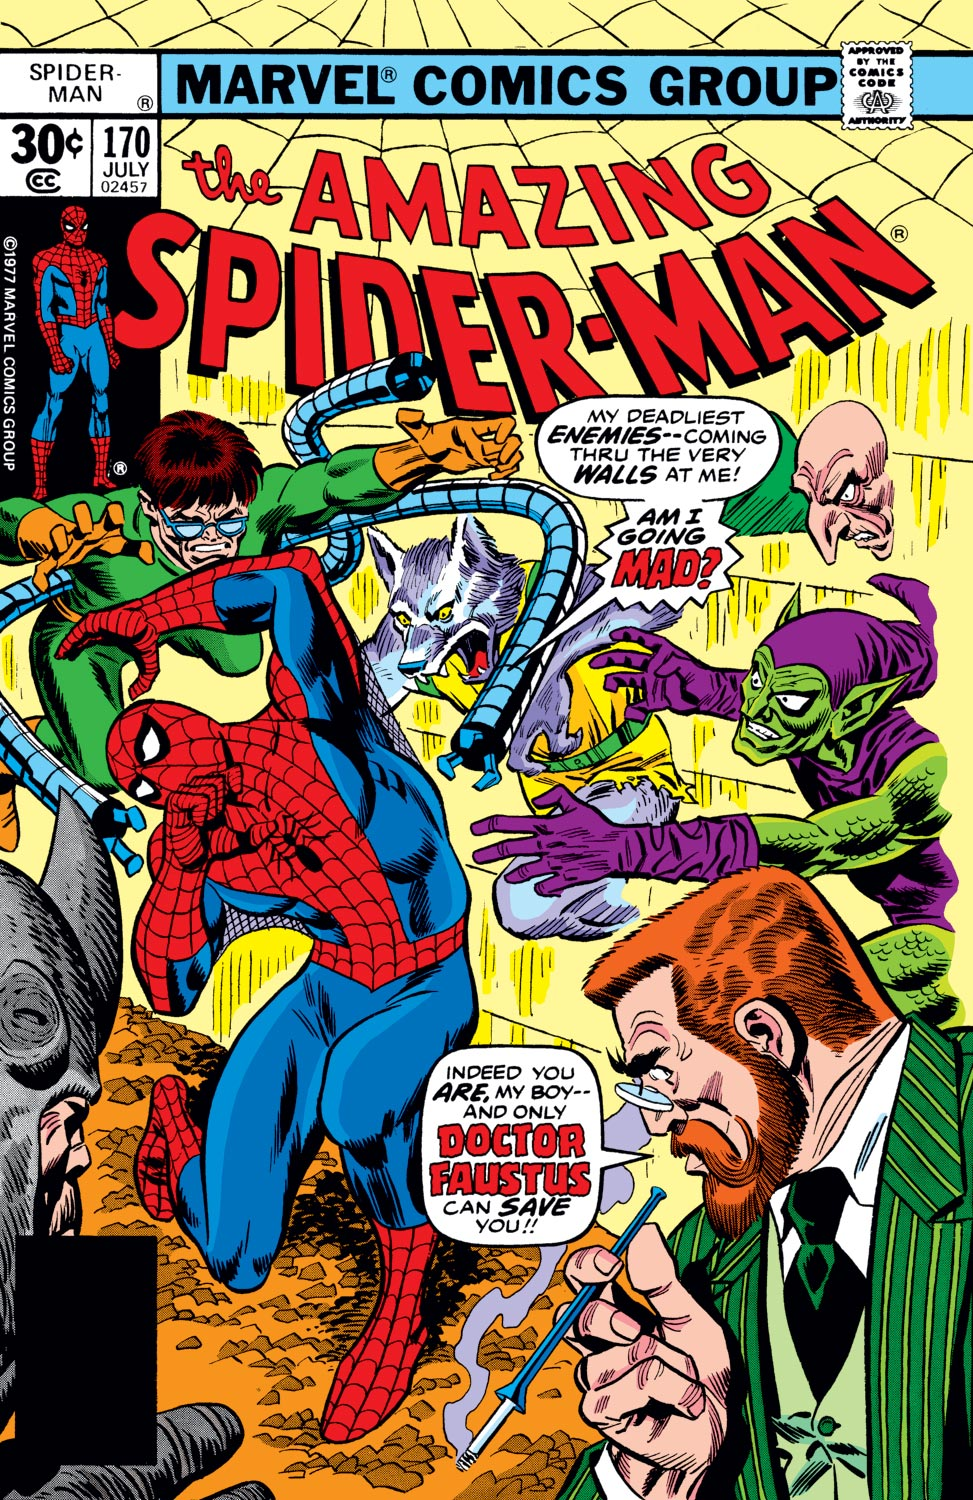 The Amazing Spider-Man (1963) #170